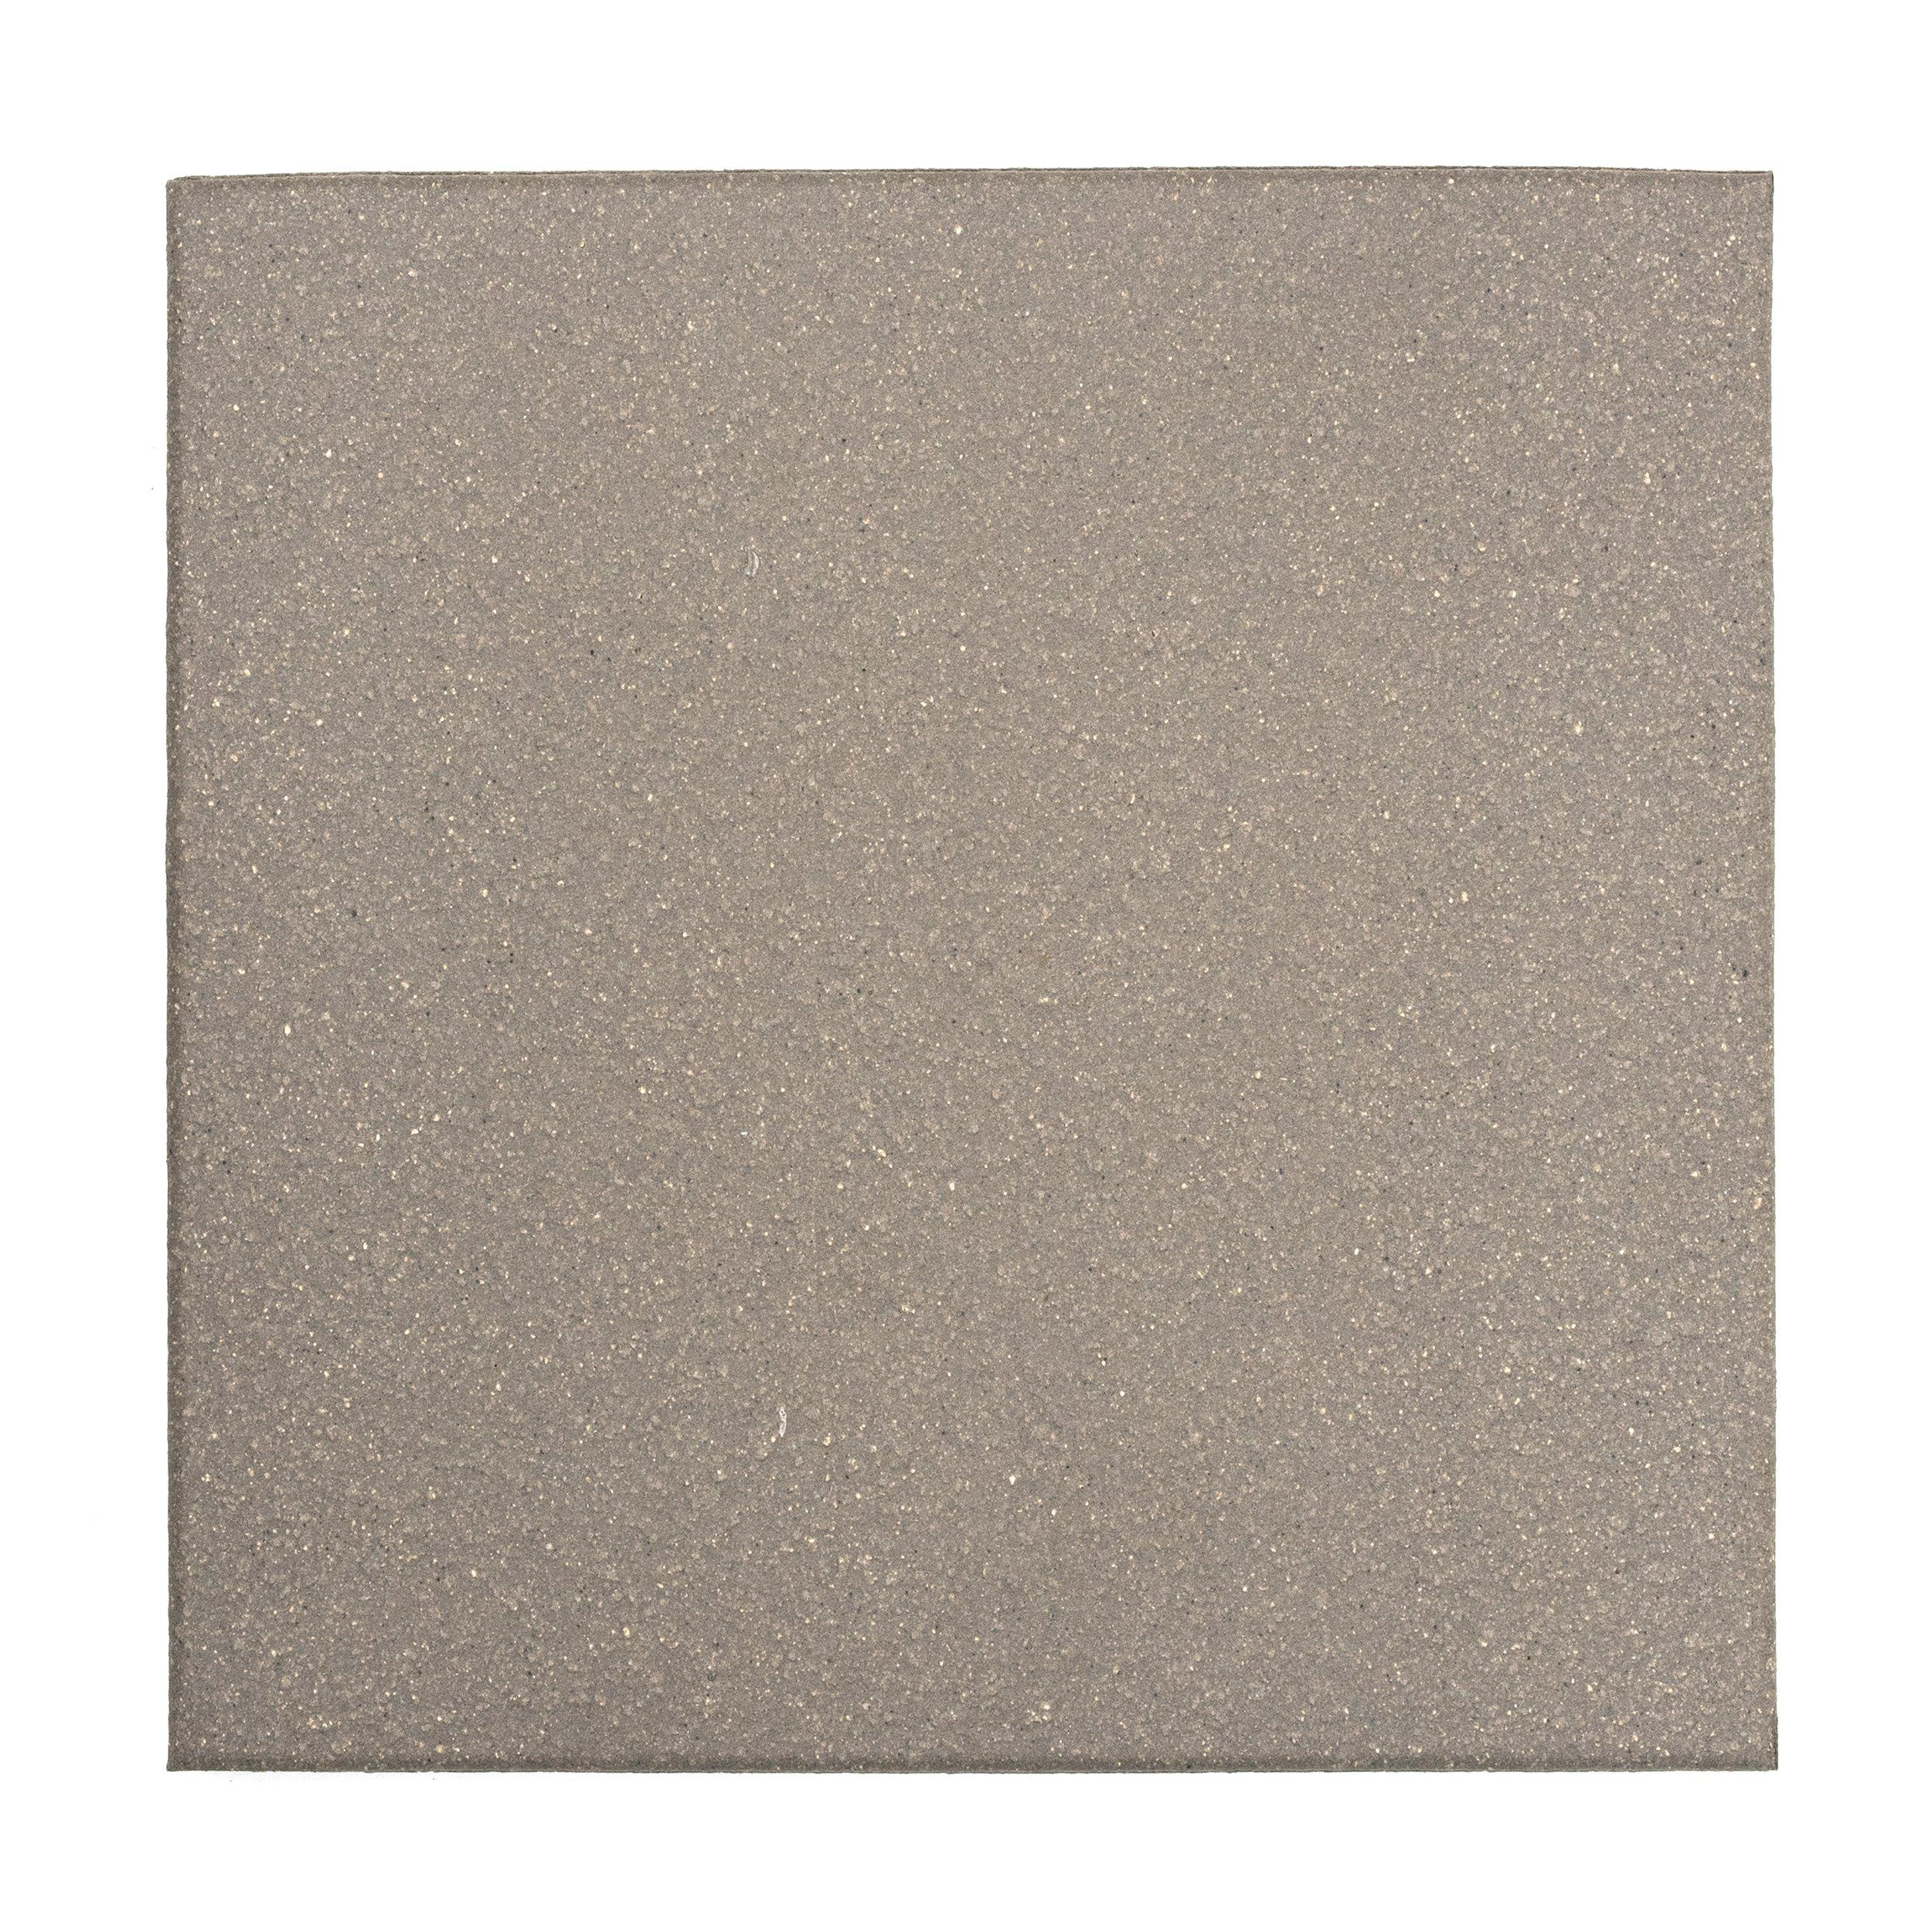 colonial red abrasive quarry tile 6 x